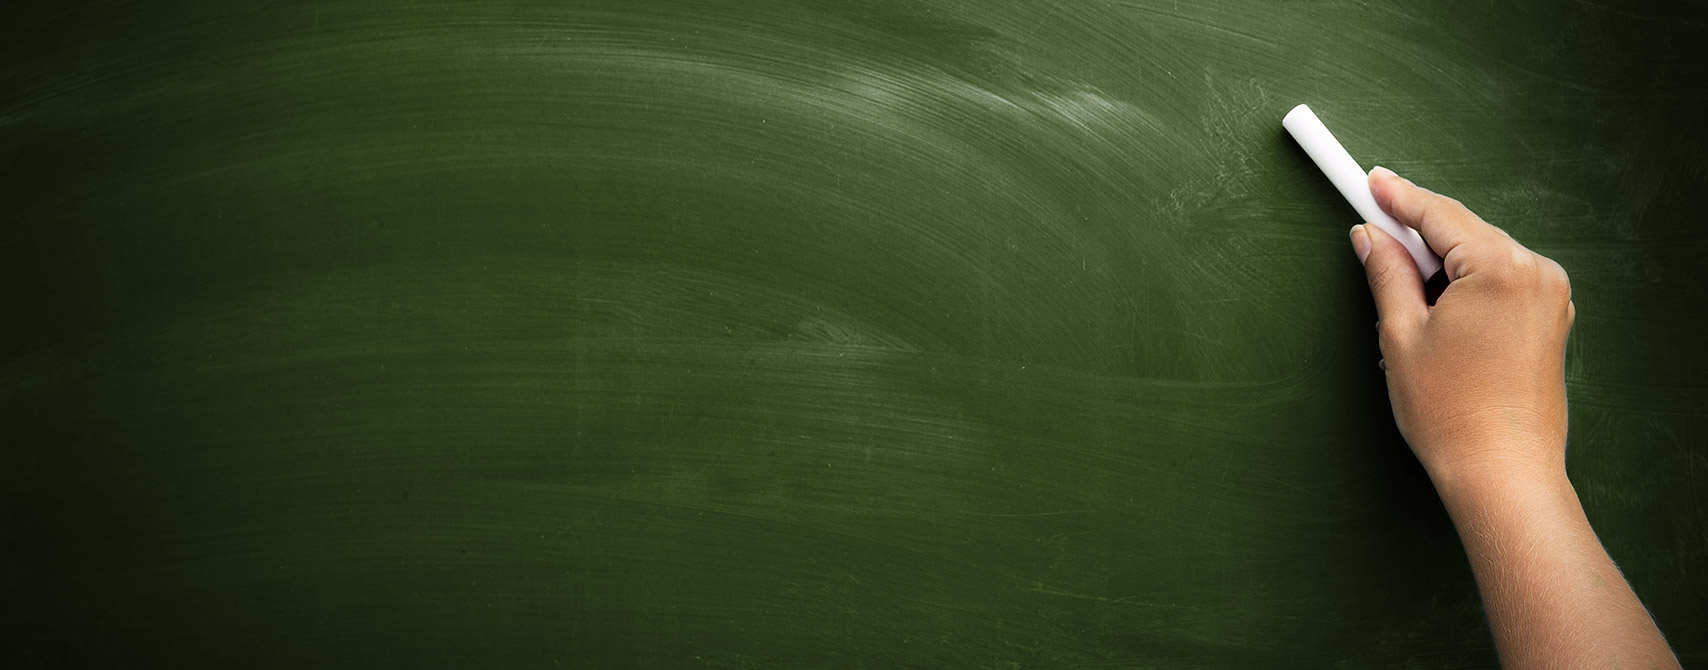 Freshly wiped green chalkboard with hand and chalk poised to write.